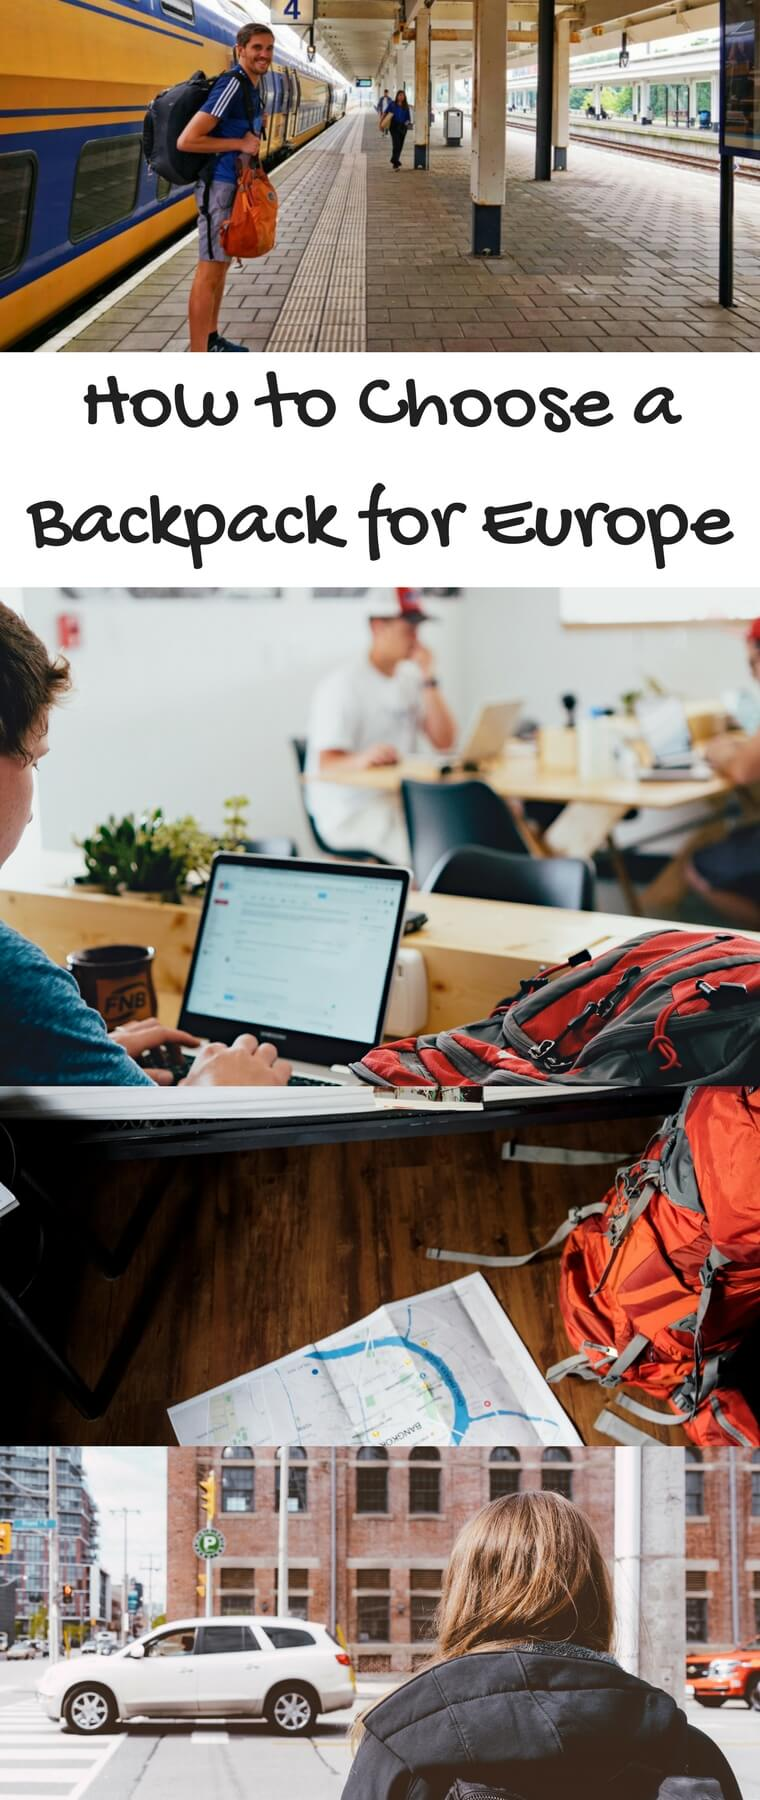 Looking for the best backpacks for traveling in Europe? Check out this guide on how to choose the perfect backpack for Europe. Whether you are going to Spain, London, Paris, or anywhere else in Europe, this will help you pick the right backpack for your EuroTrip! #backpack #Europe